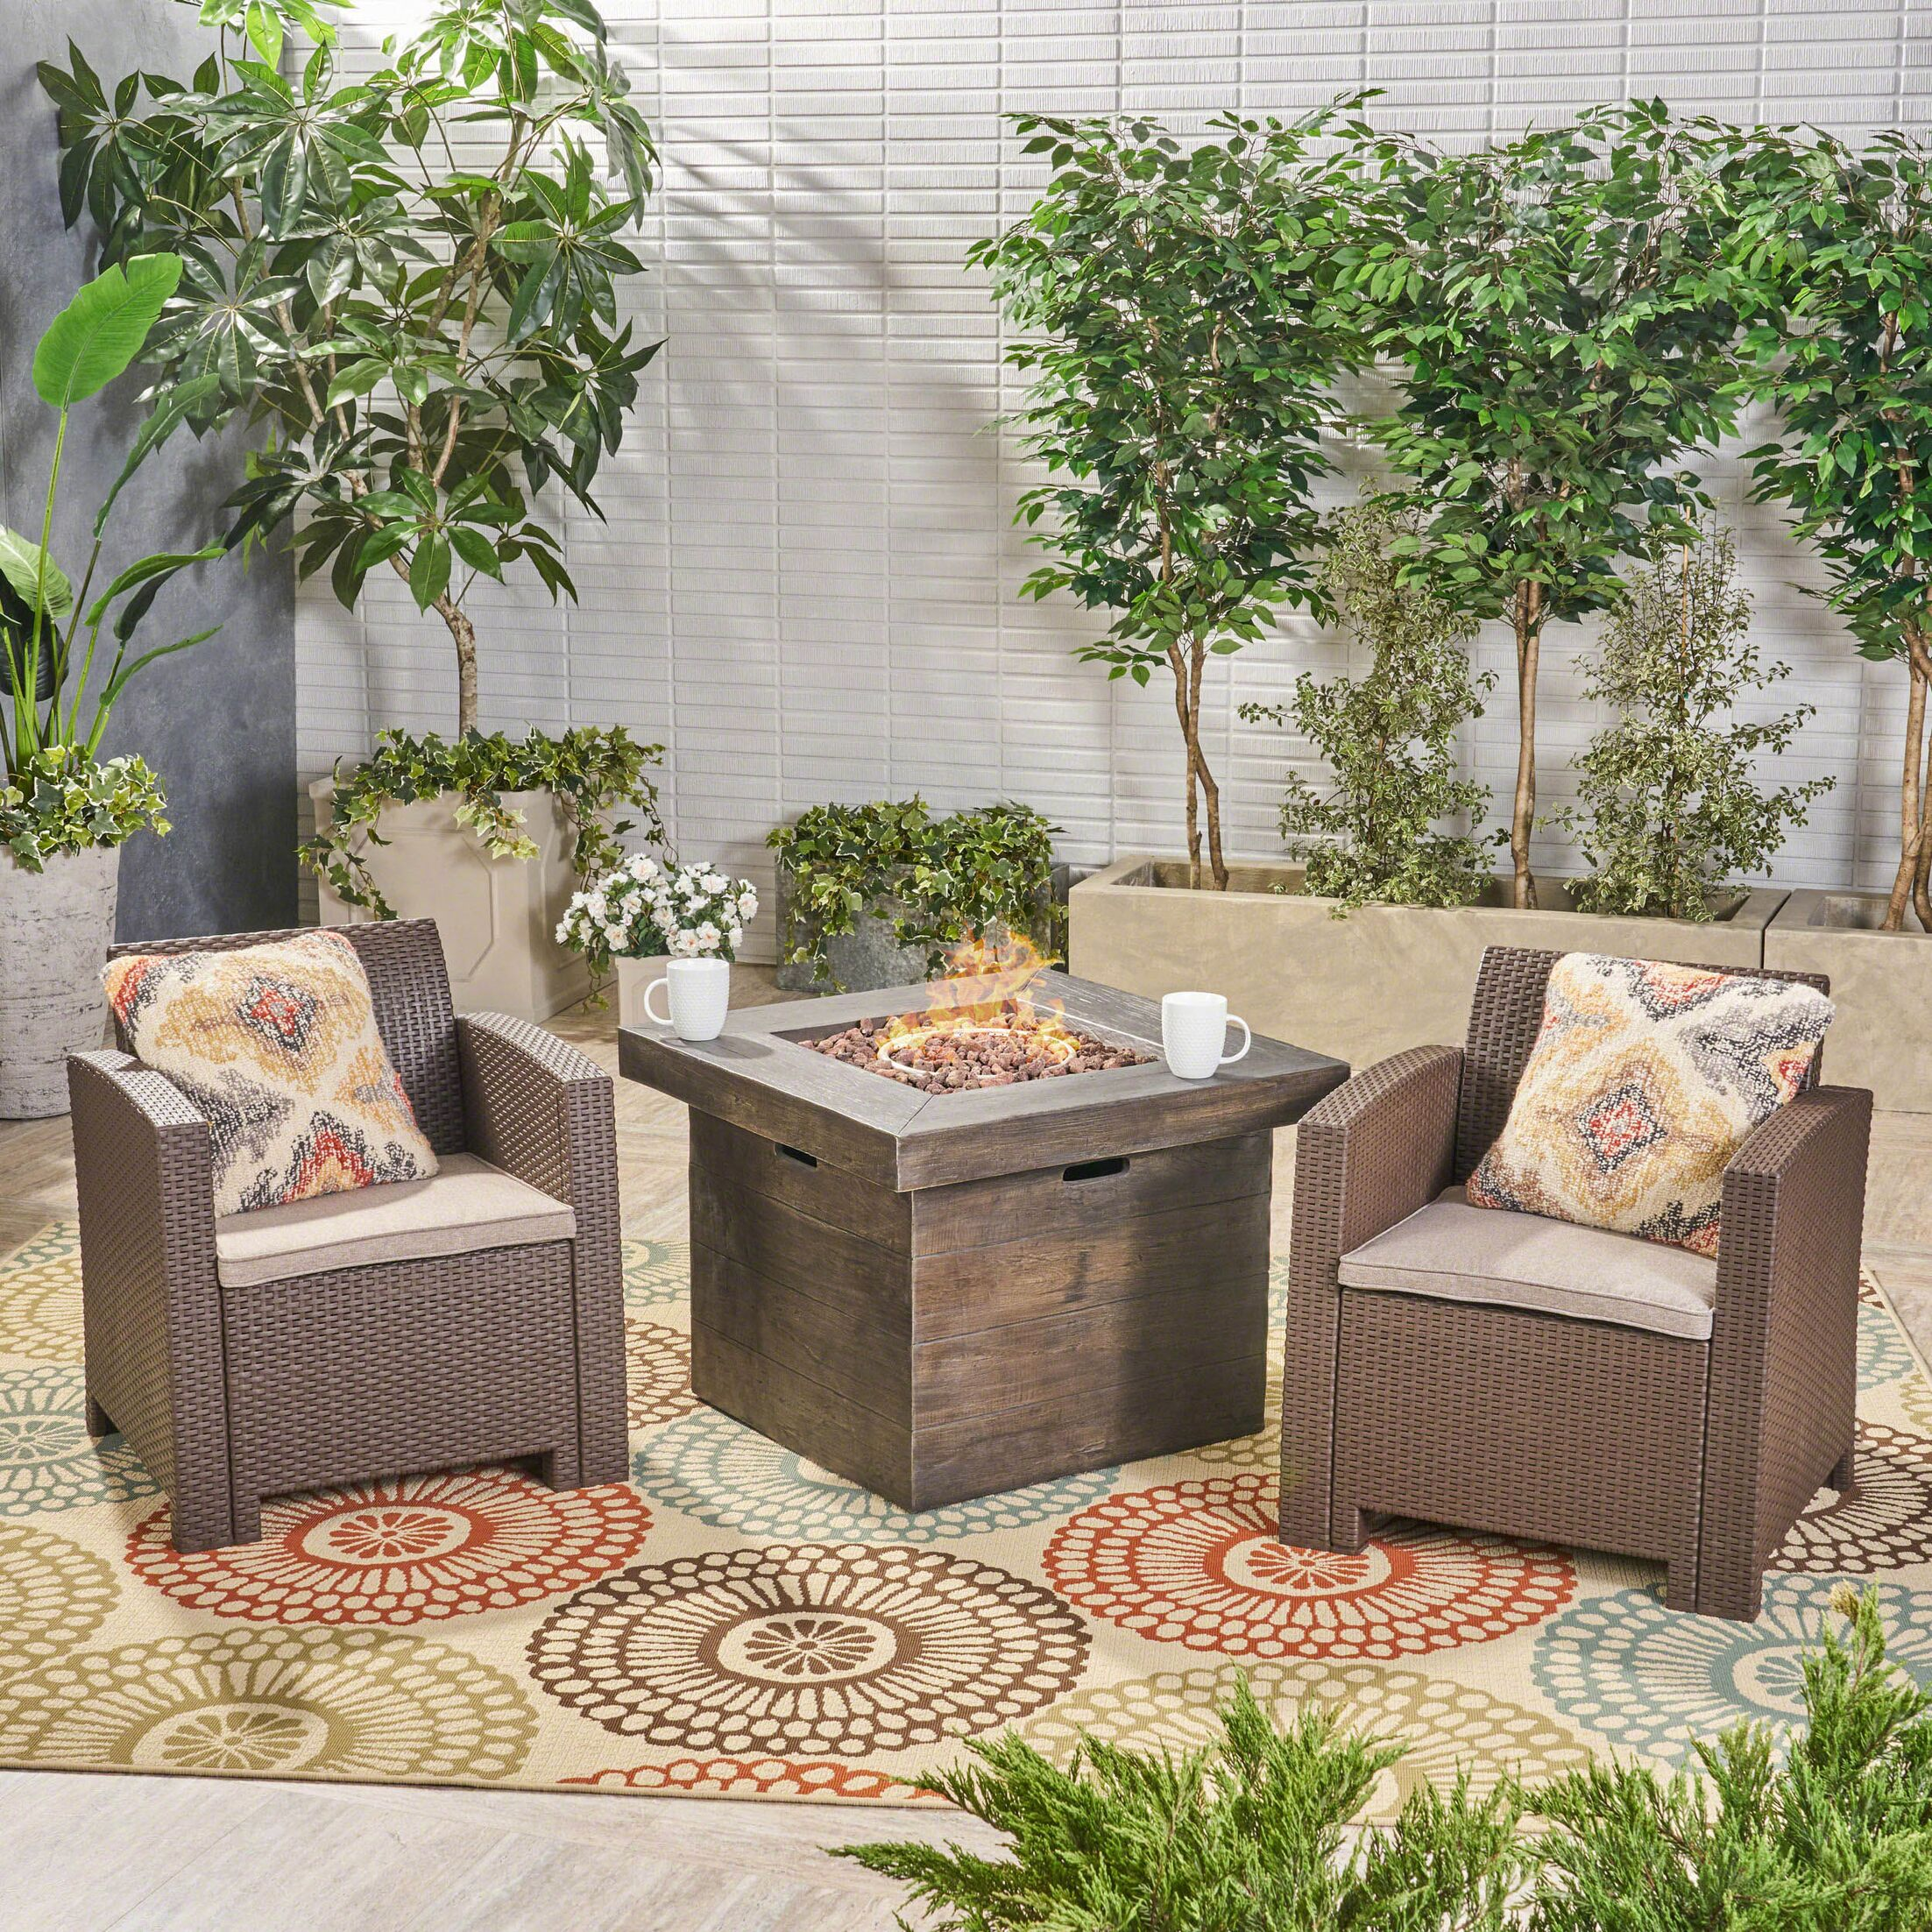 Helena Outdoor 3 Piece Rattan Sofa Seating Group with Cushions Frame Finish: Brown, Cushion Color: Mixed Beige